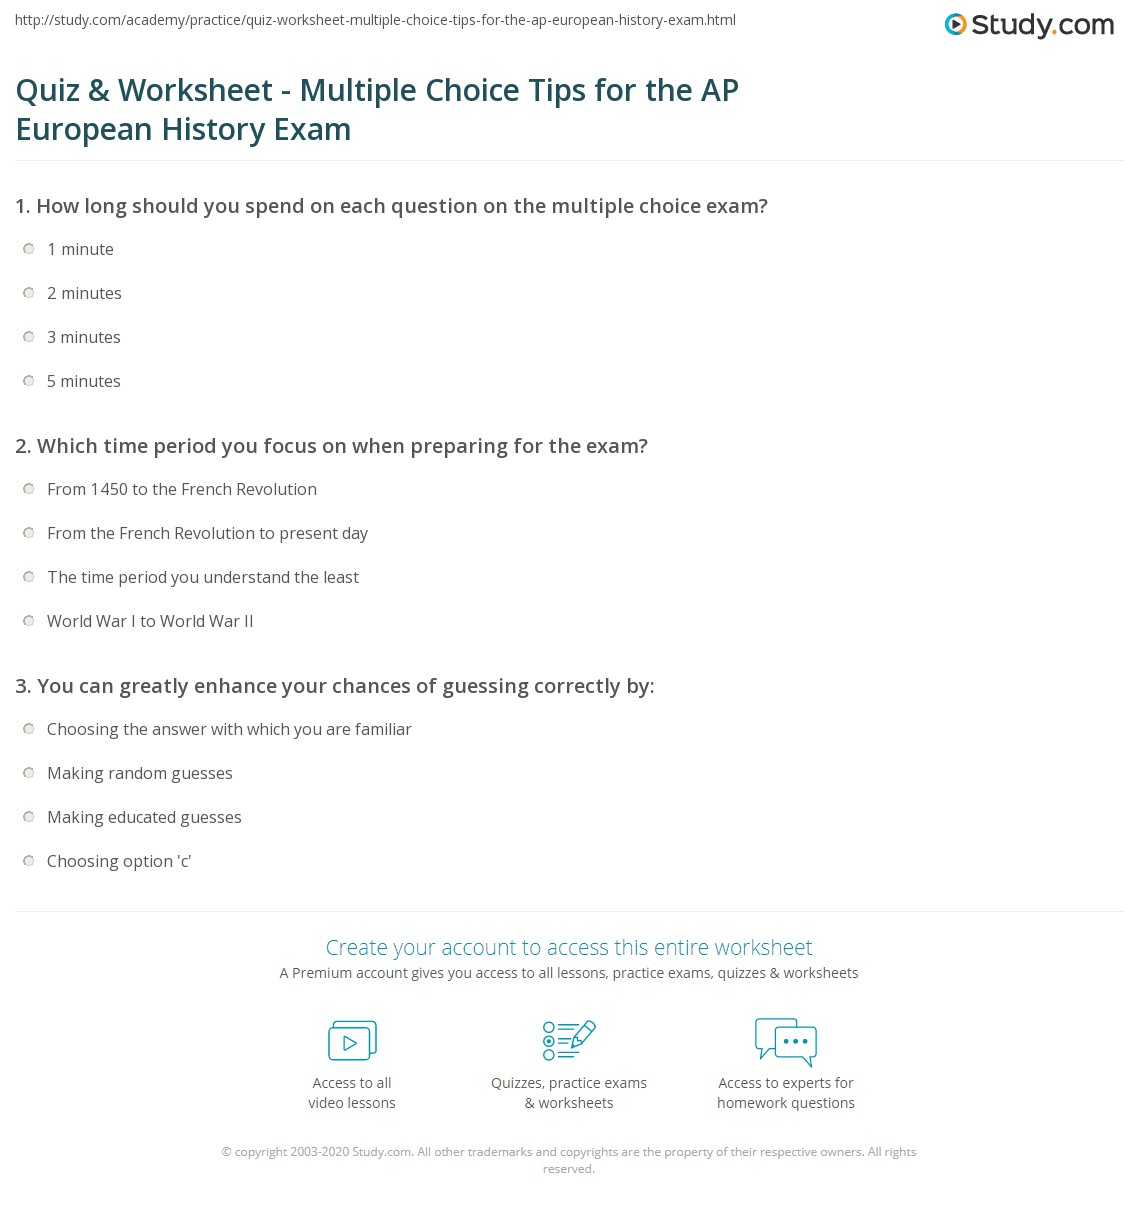 quiz worksheet multiple choice tips for the ap european print mastering multiple choice questions on the ap european history exam worksheet